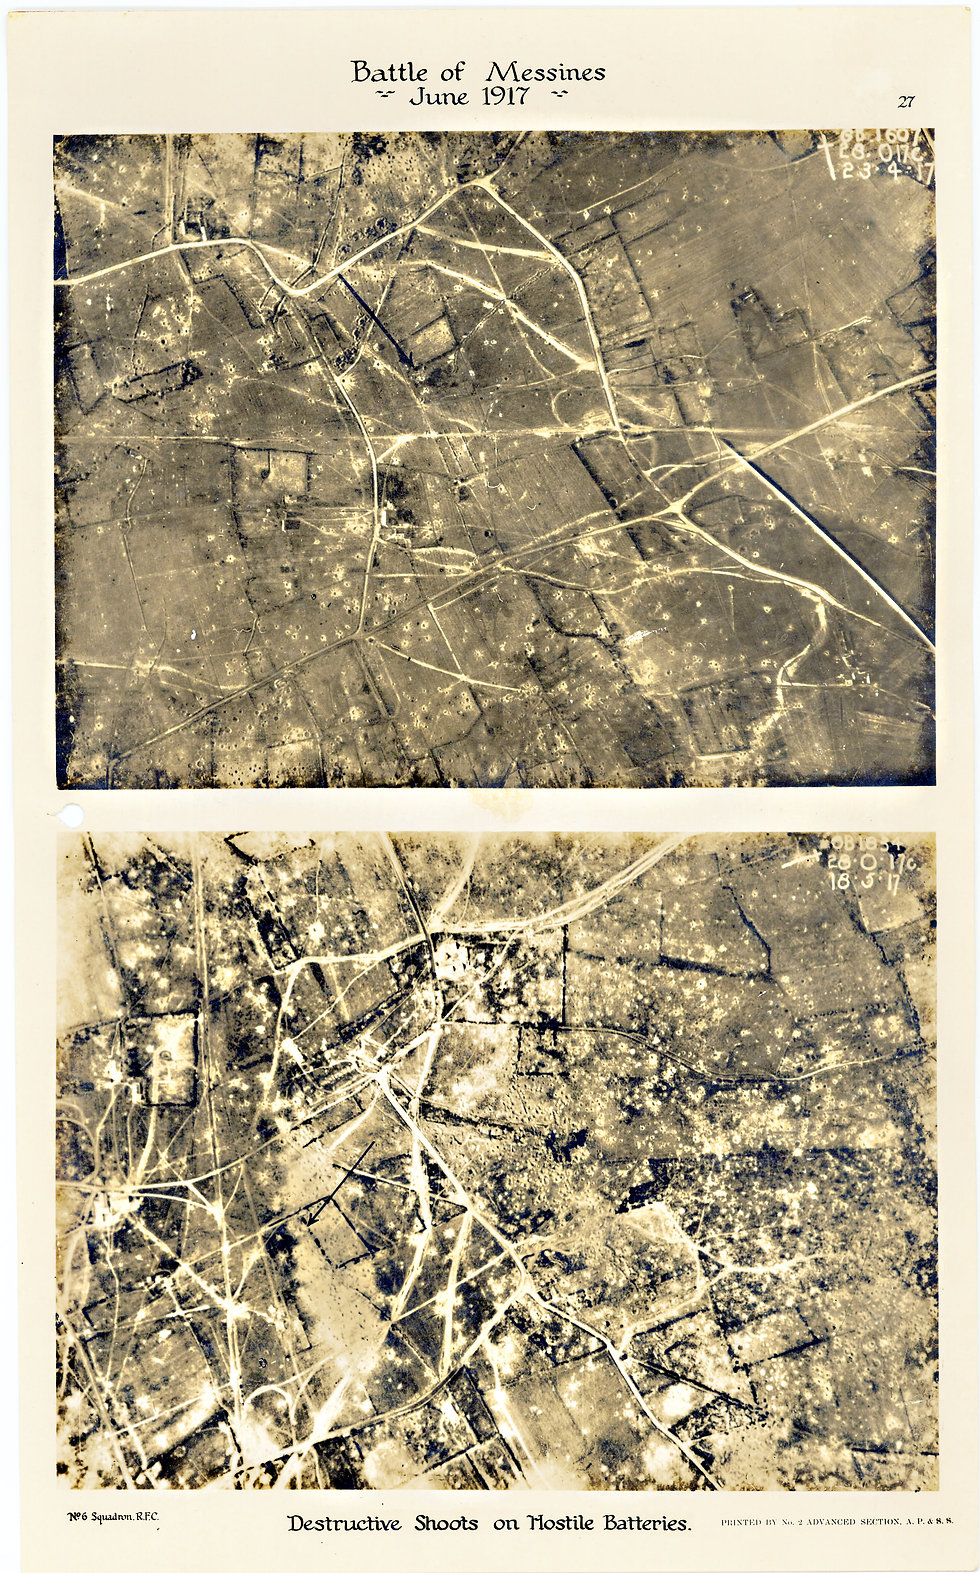 6 Squadron aerial photos of destructive shoot near Oastoor Blankestraat, taken by 6 Squadron a few weeks before the Battle of Messines, 1917